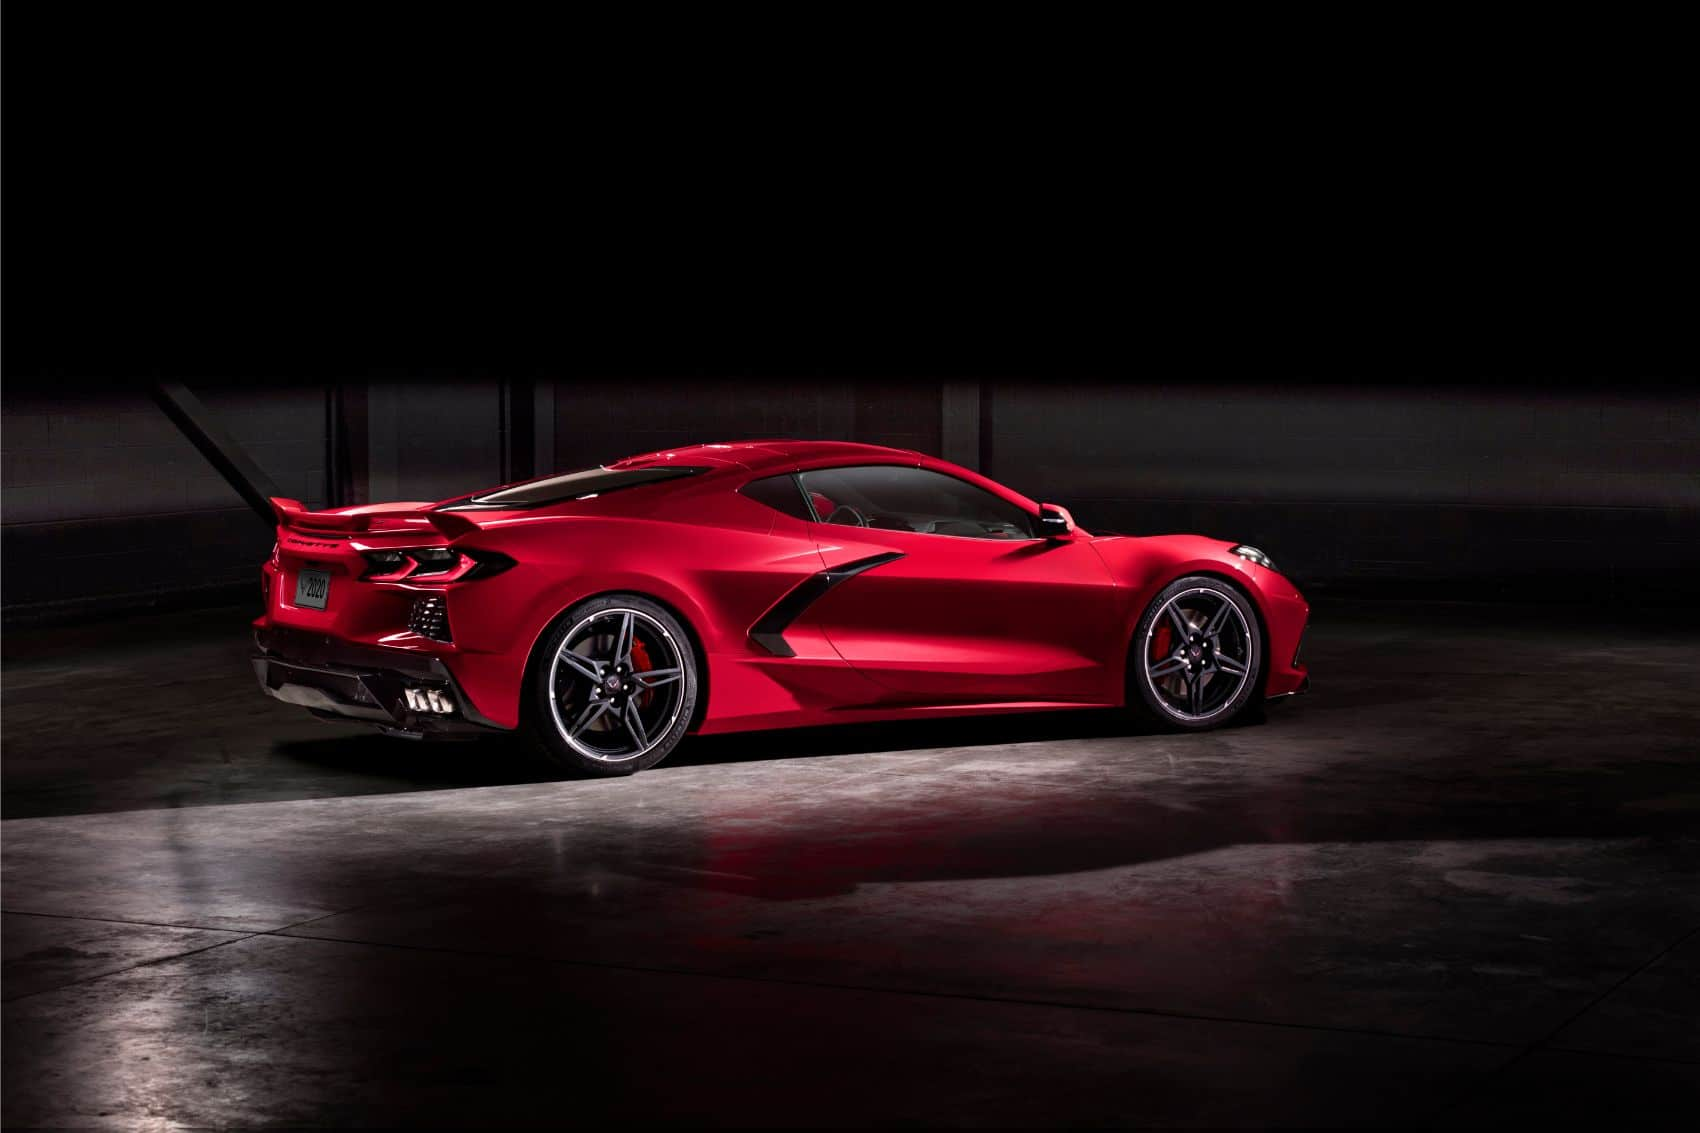 2020 Chevrolet Corvette Stingray 024